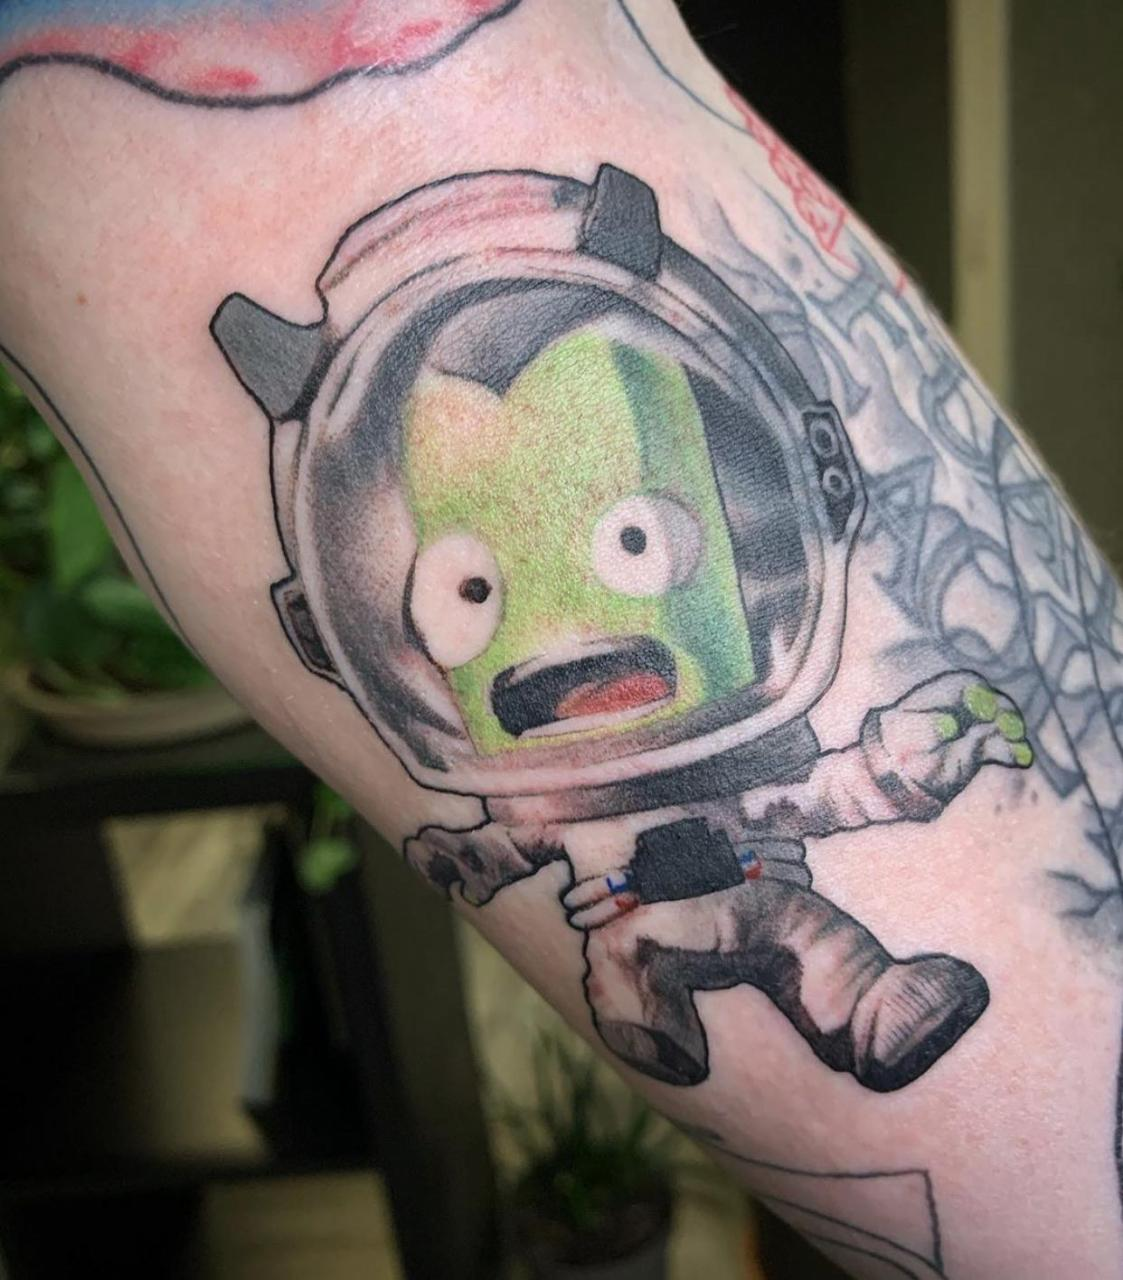 New addition to my in progress nerd sleeve. My arm is filled with references to my favorite video games through my life. This here is Bob Kerman from Kerbal Space Program. Amanda Leitch - White Rhino Collective Renton Washington.